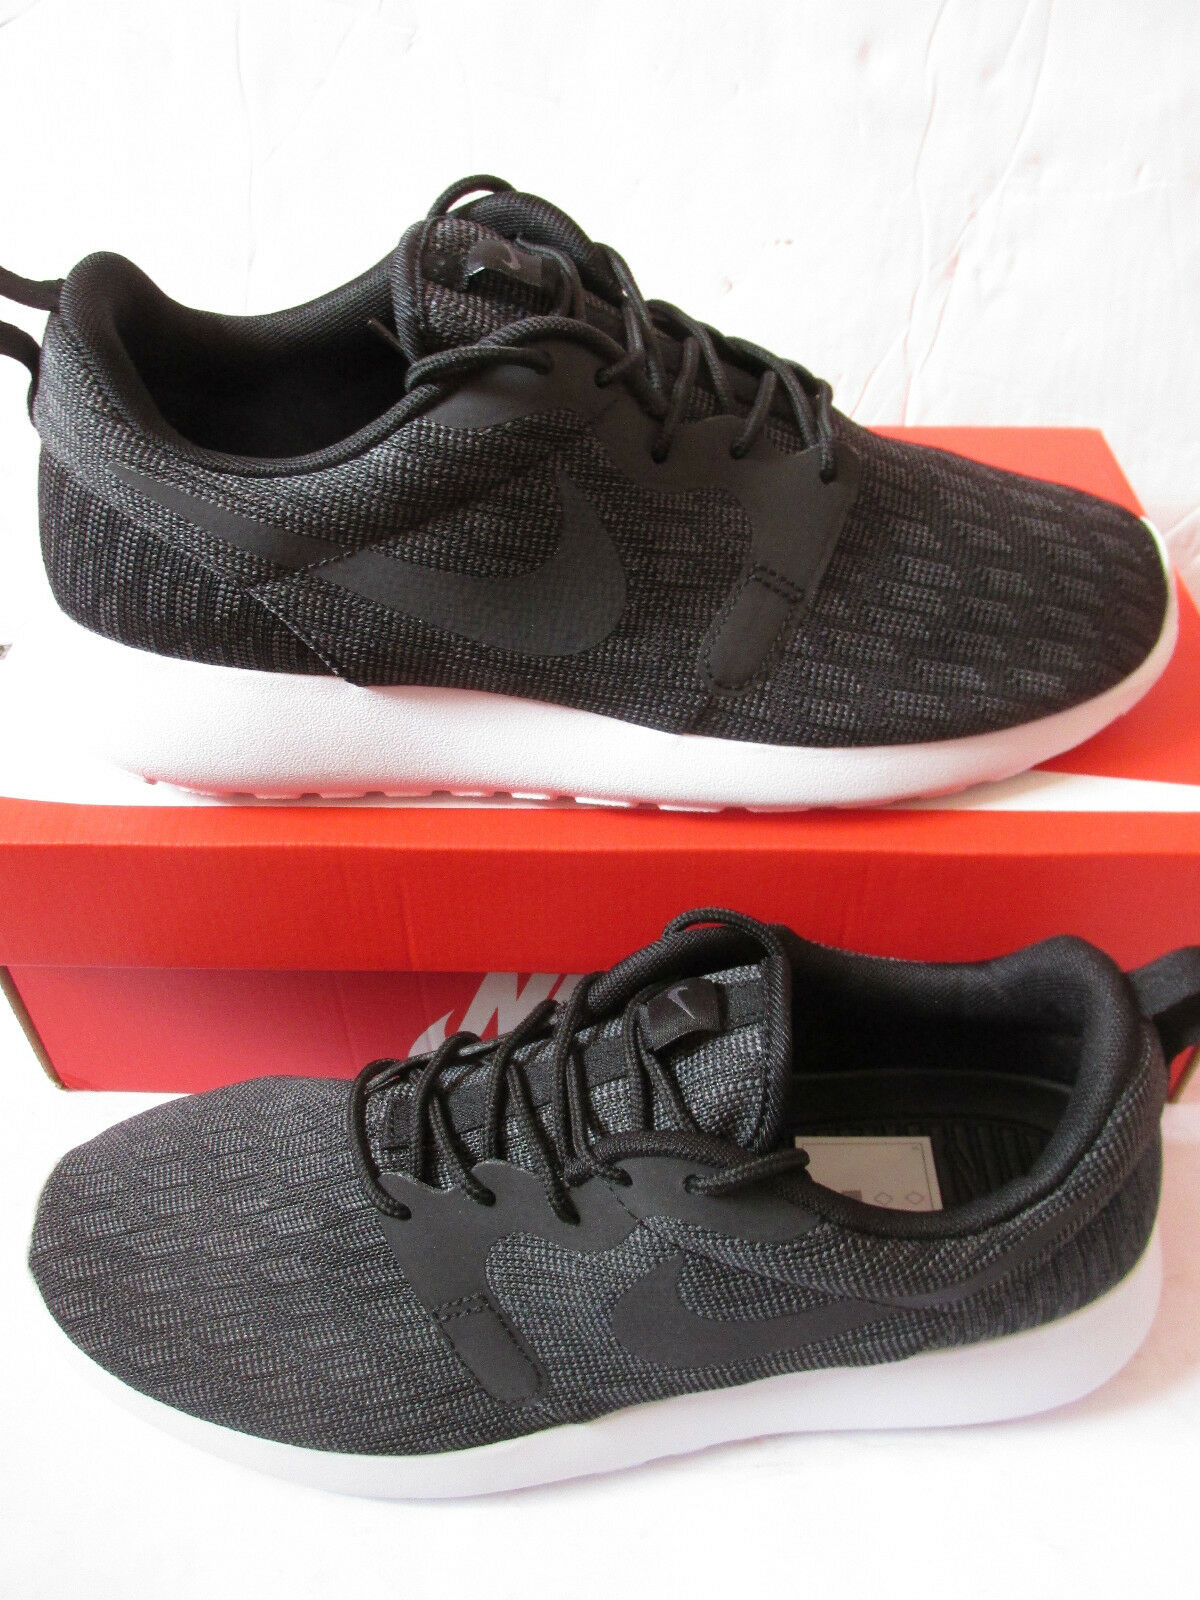 Nike Roshe One 777429 Kjcrd Hommes Basket Course 777429 One 001 Baskets f73cb7